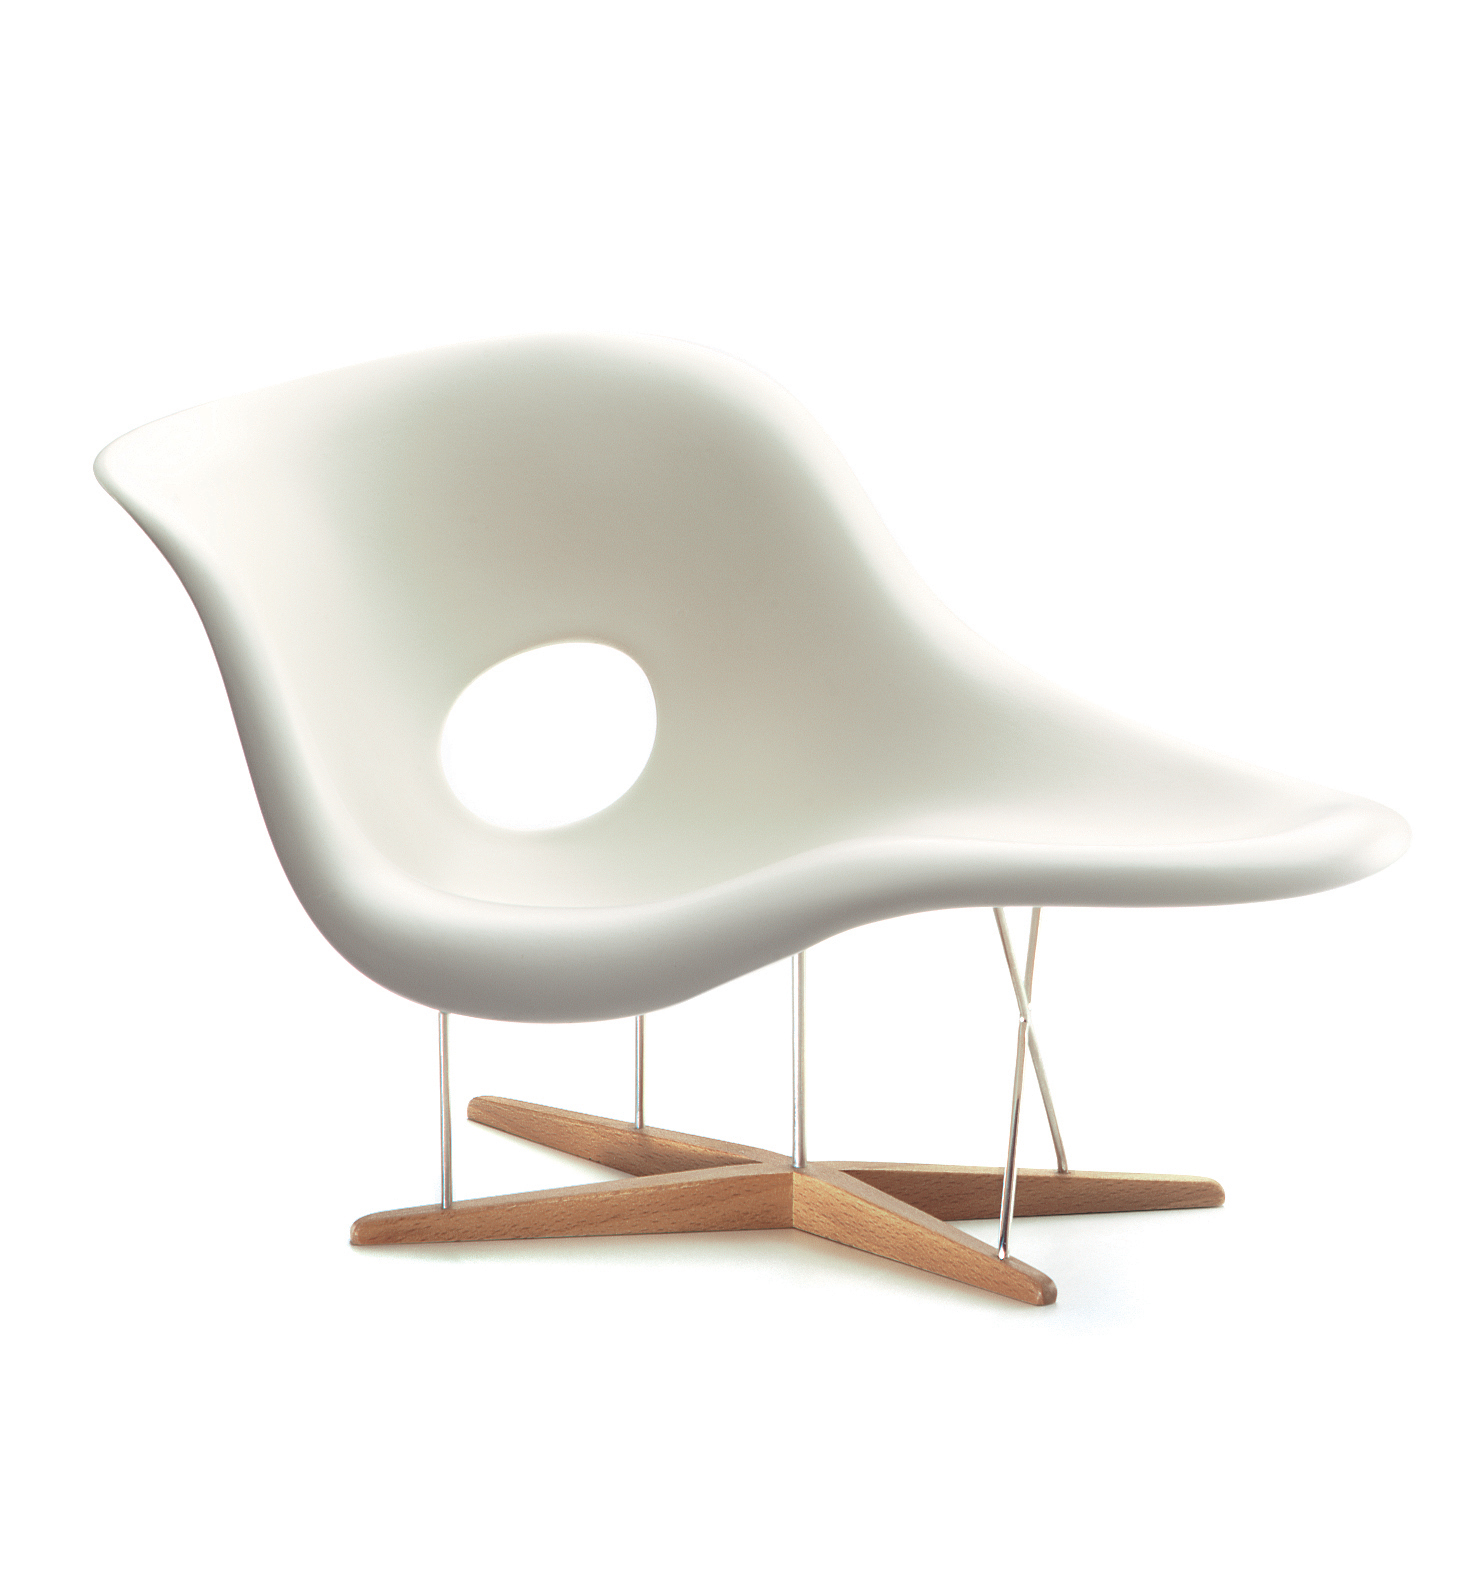 Chaises Aemes 1001 Chairs La Chaise Charles And Ray Eames 0007